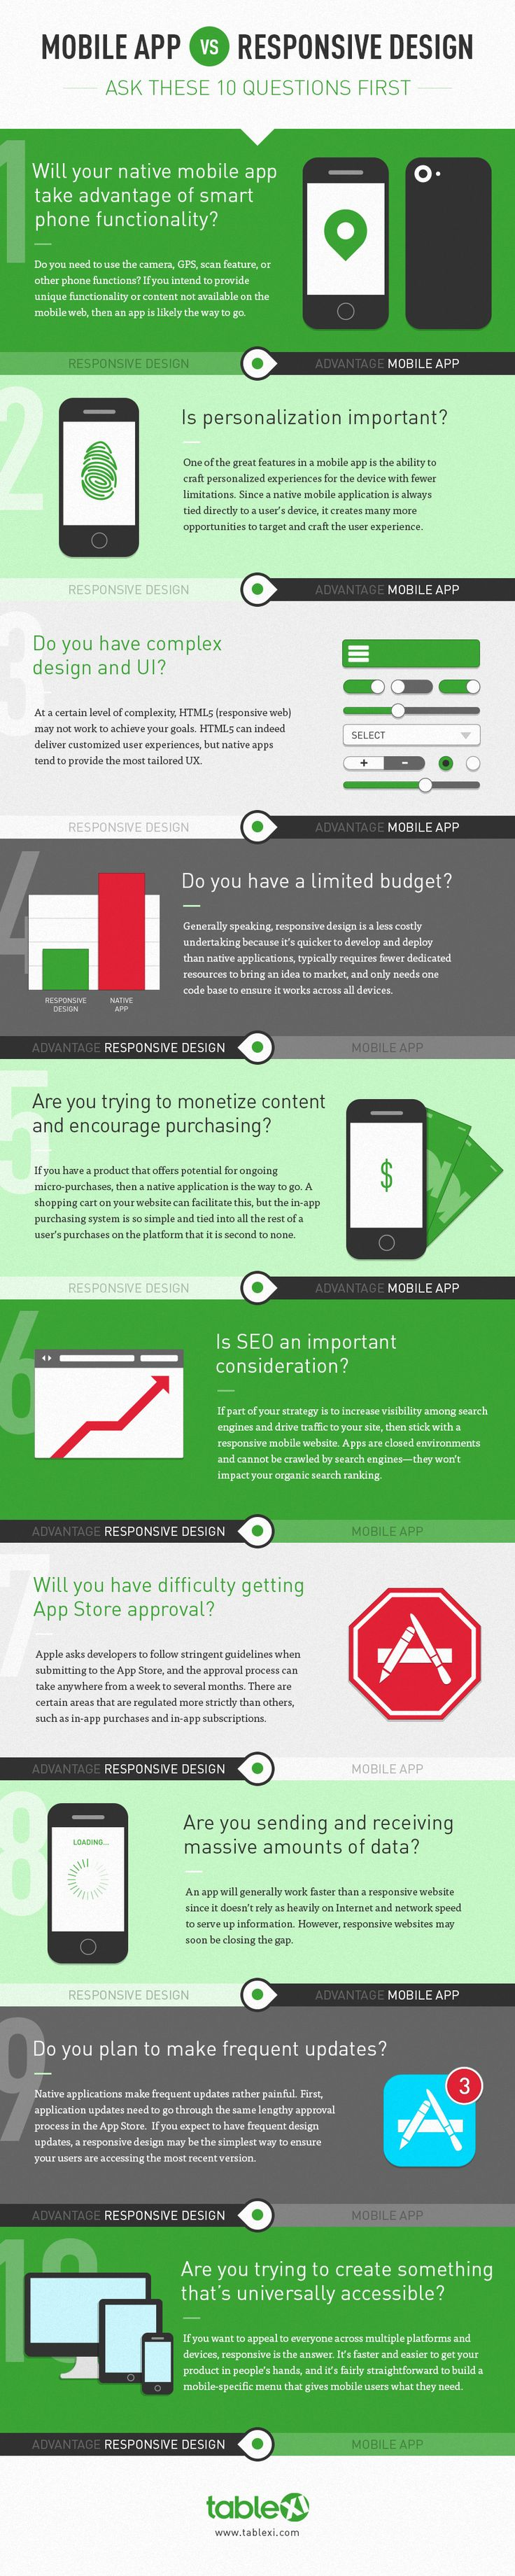 #Infographic: #Mobile #App vs. Responsive Design - Ask These 10 Questions First | via @MobileMW